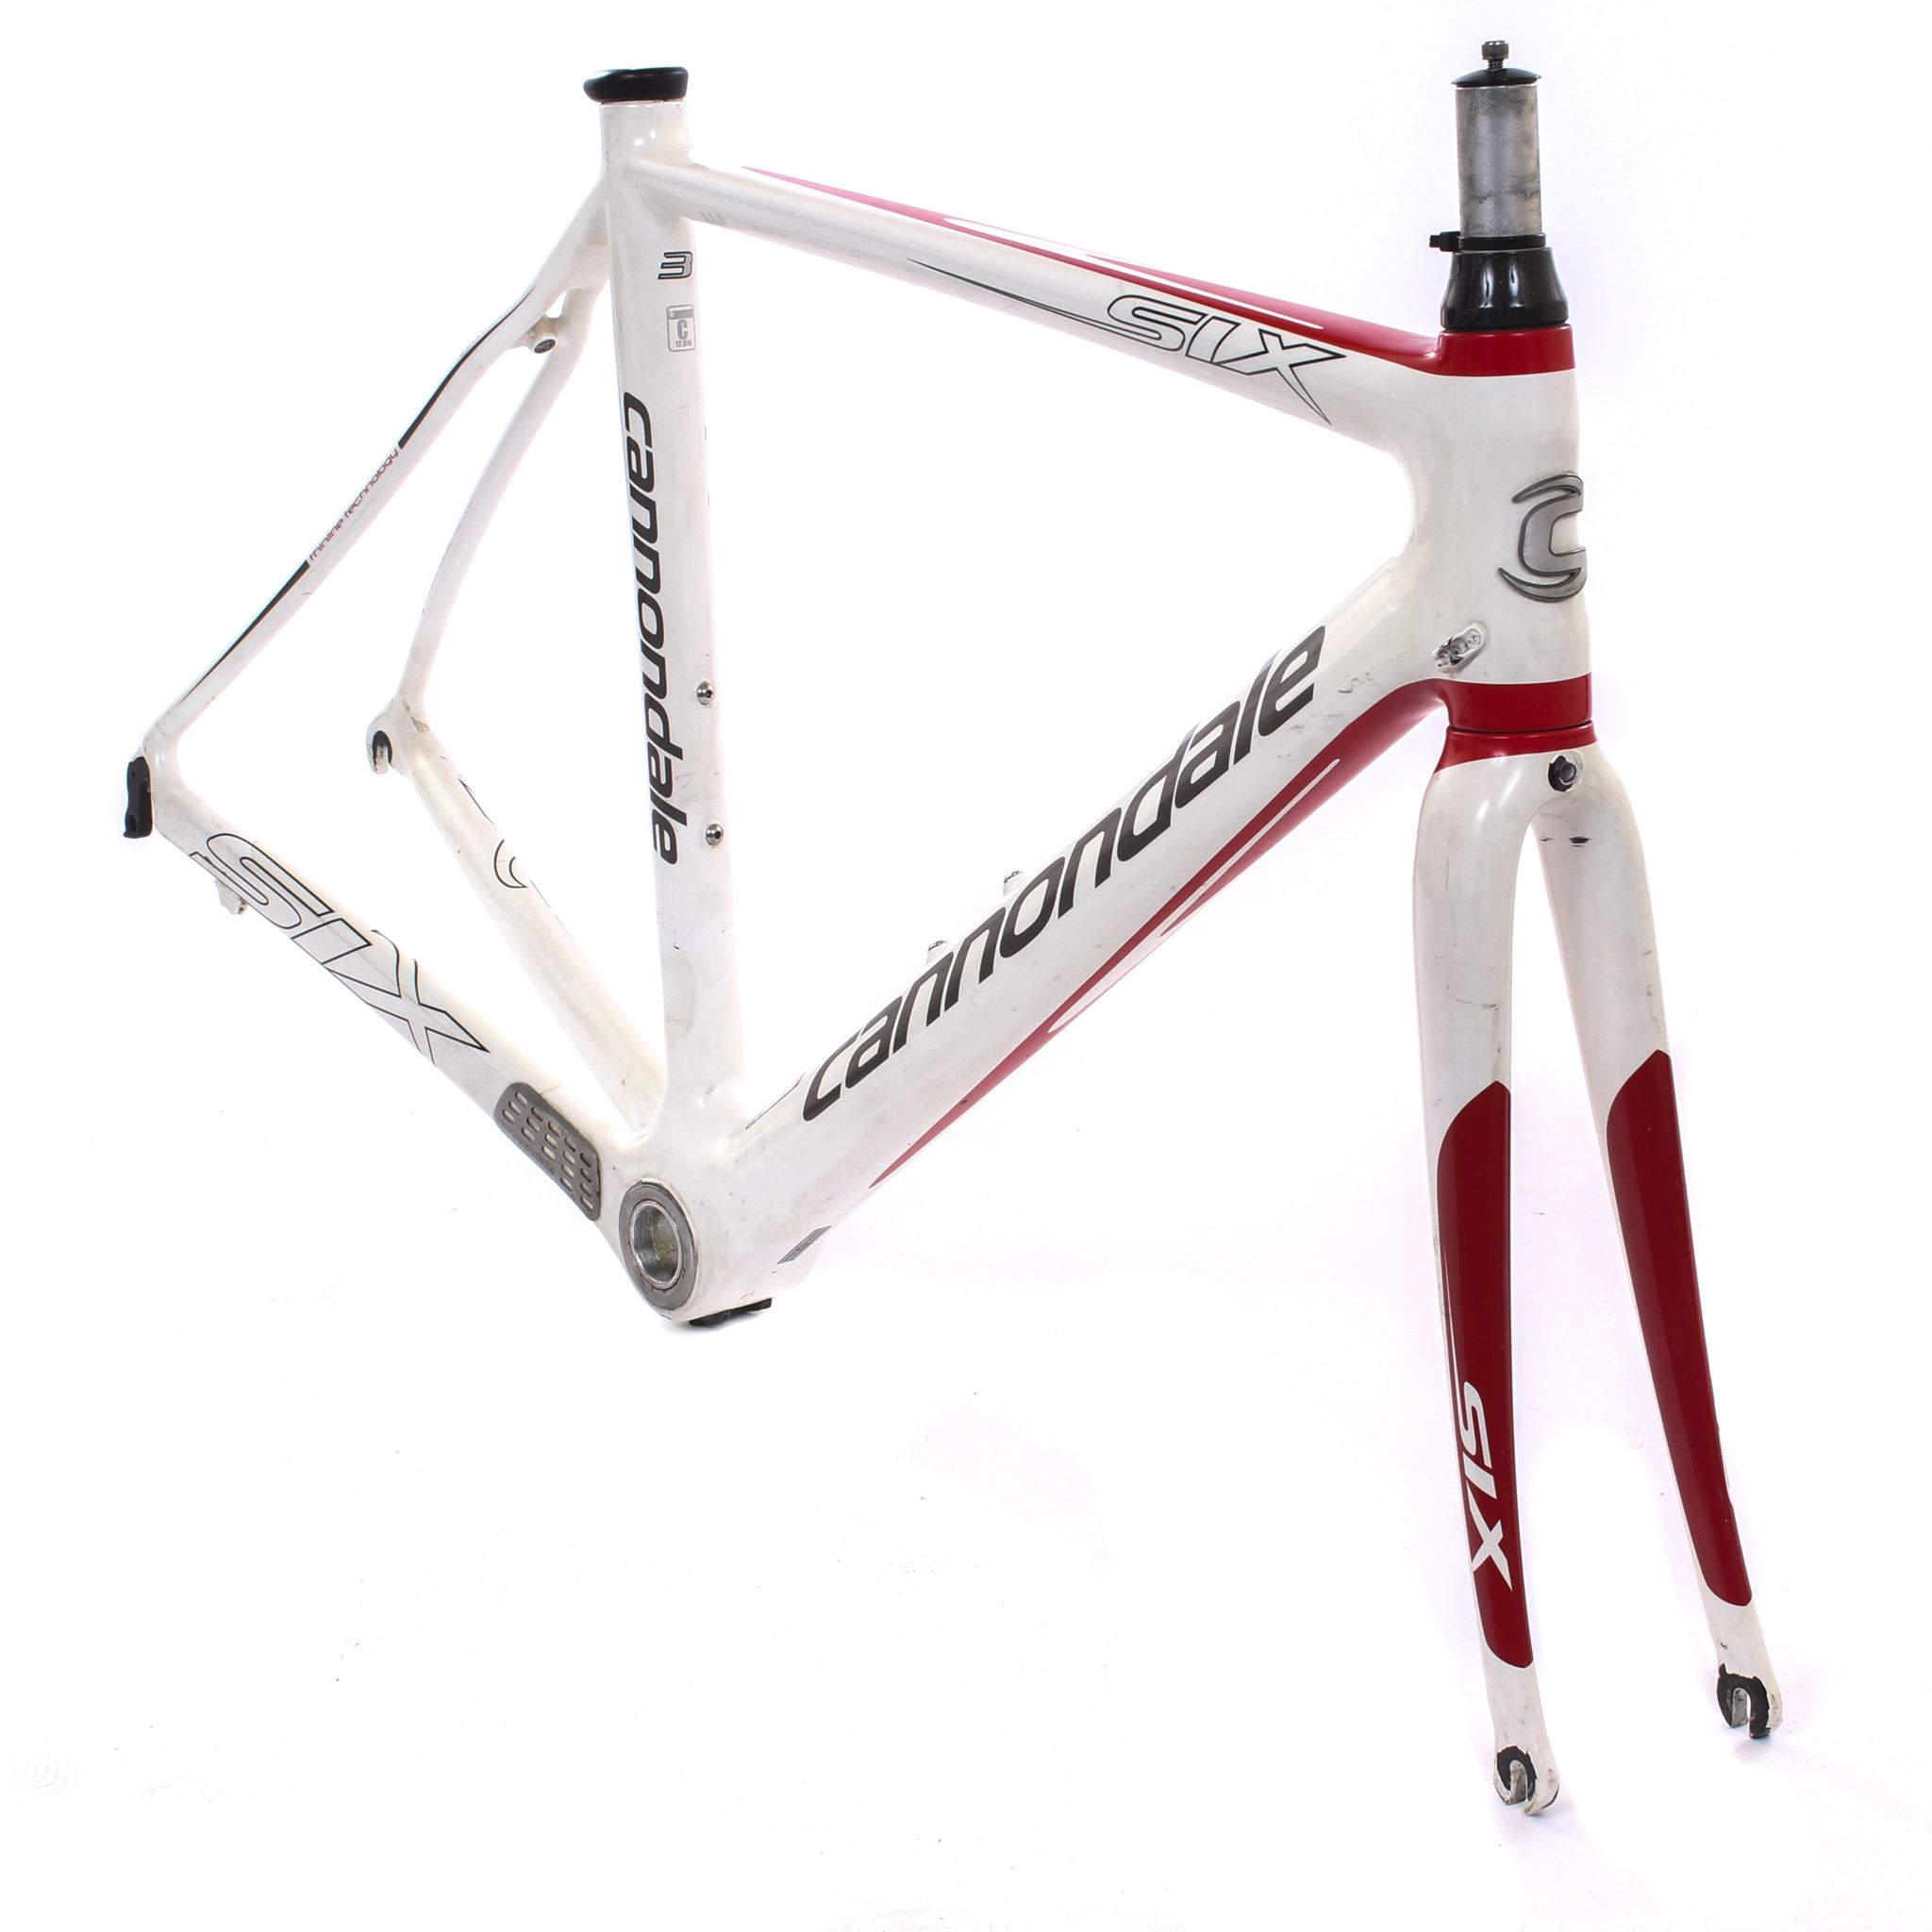 5e853598c80 USED Cannondale Six Carbon 3 52cm Carbon Fiber Road Bike Frameset White Red